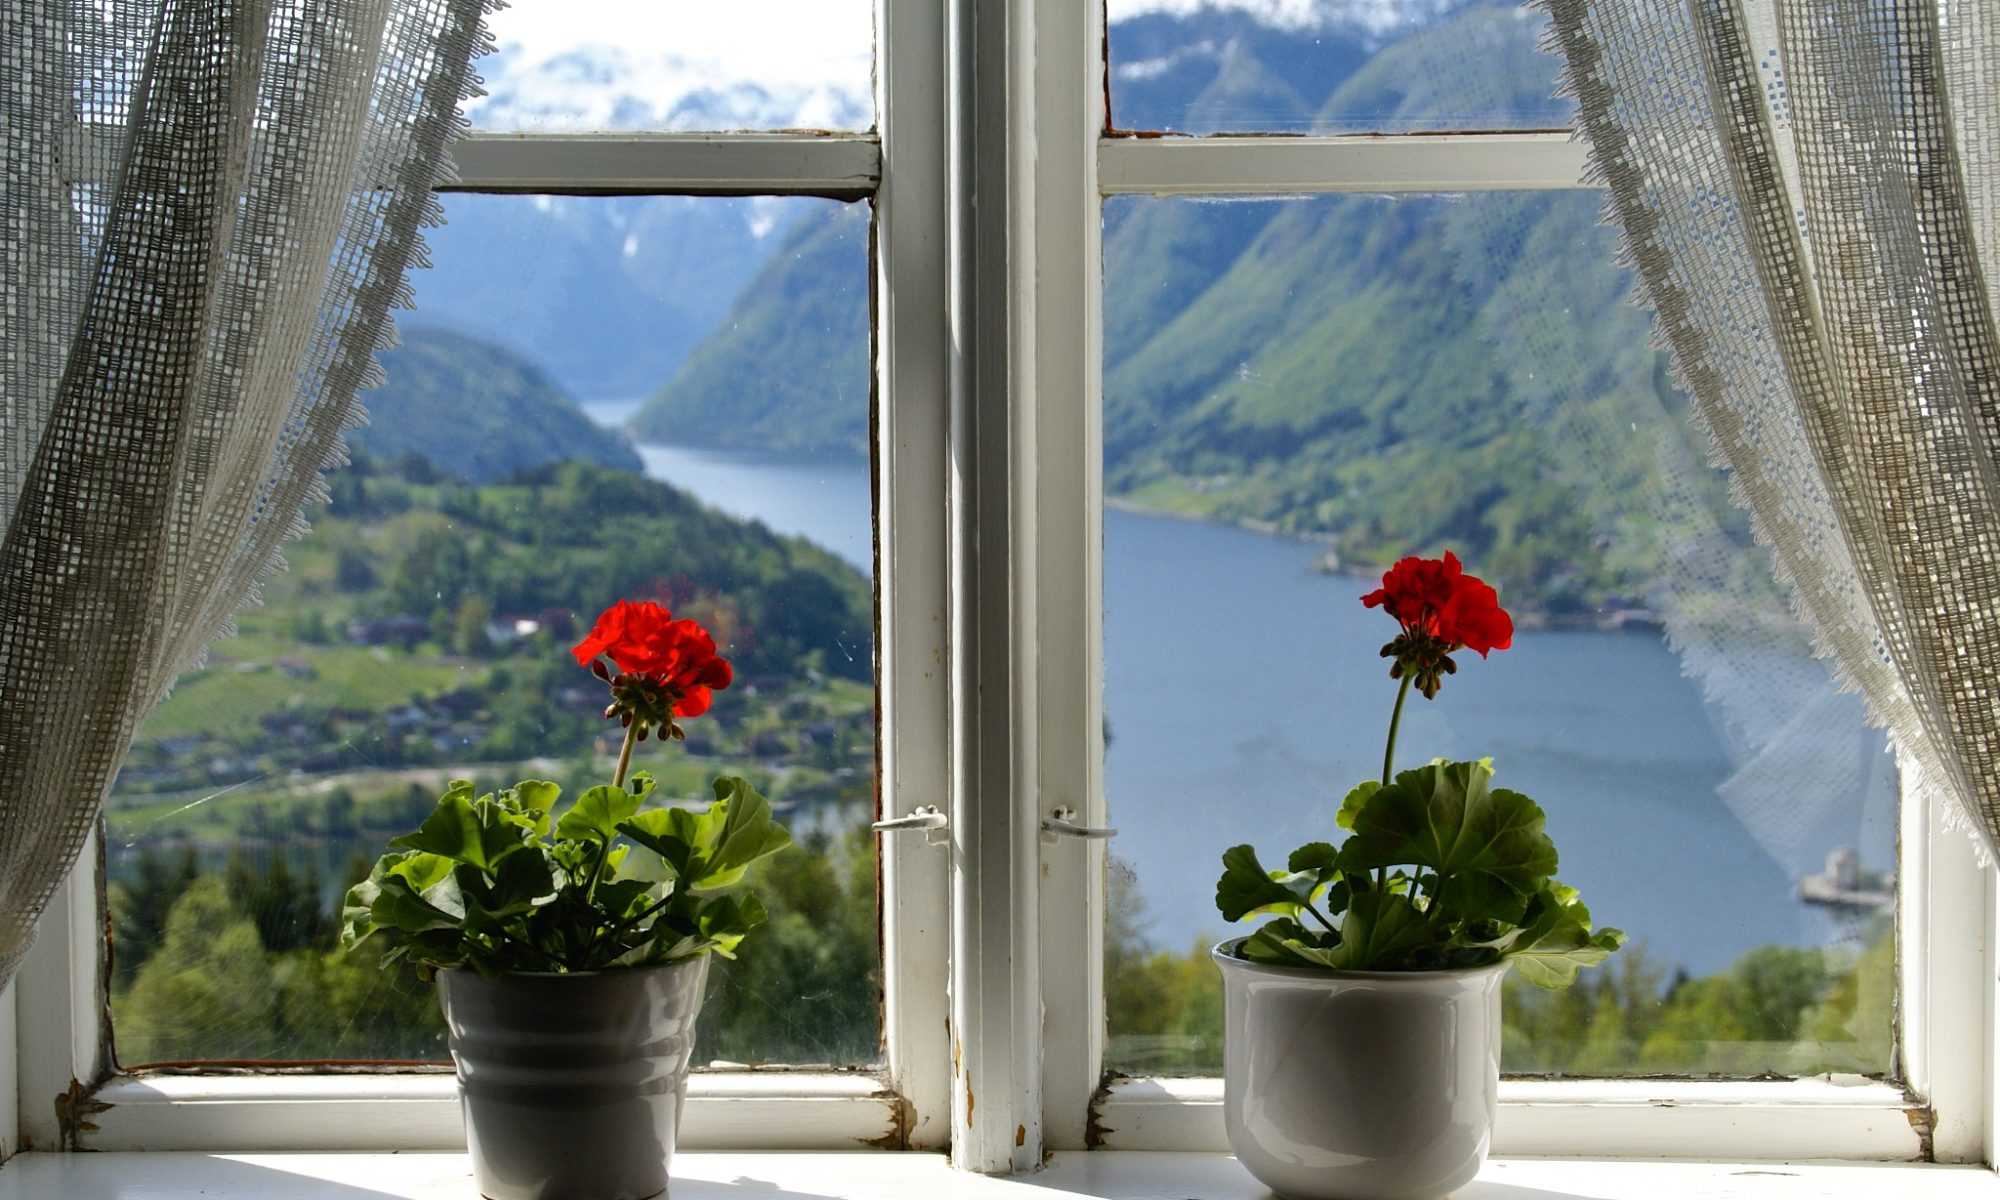 Fjords Living - Accommodation in the Fjords of Norway | NORWEGIAN ...